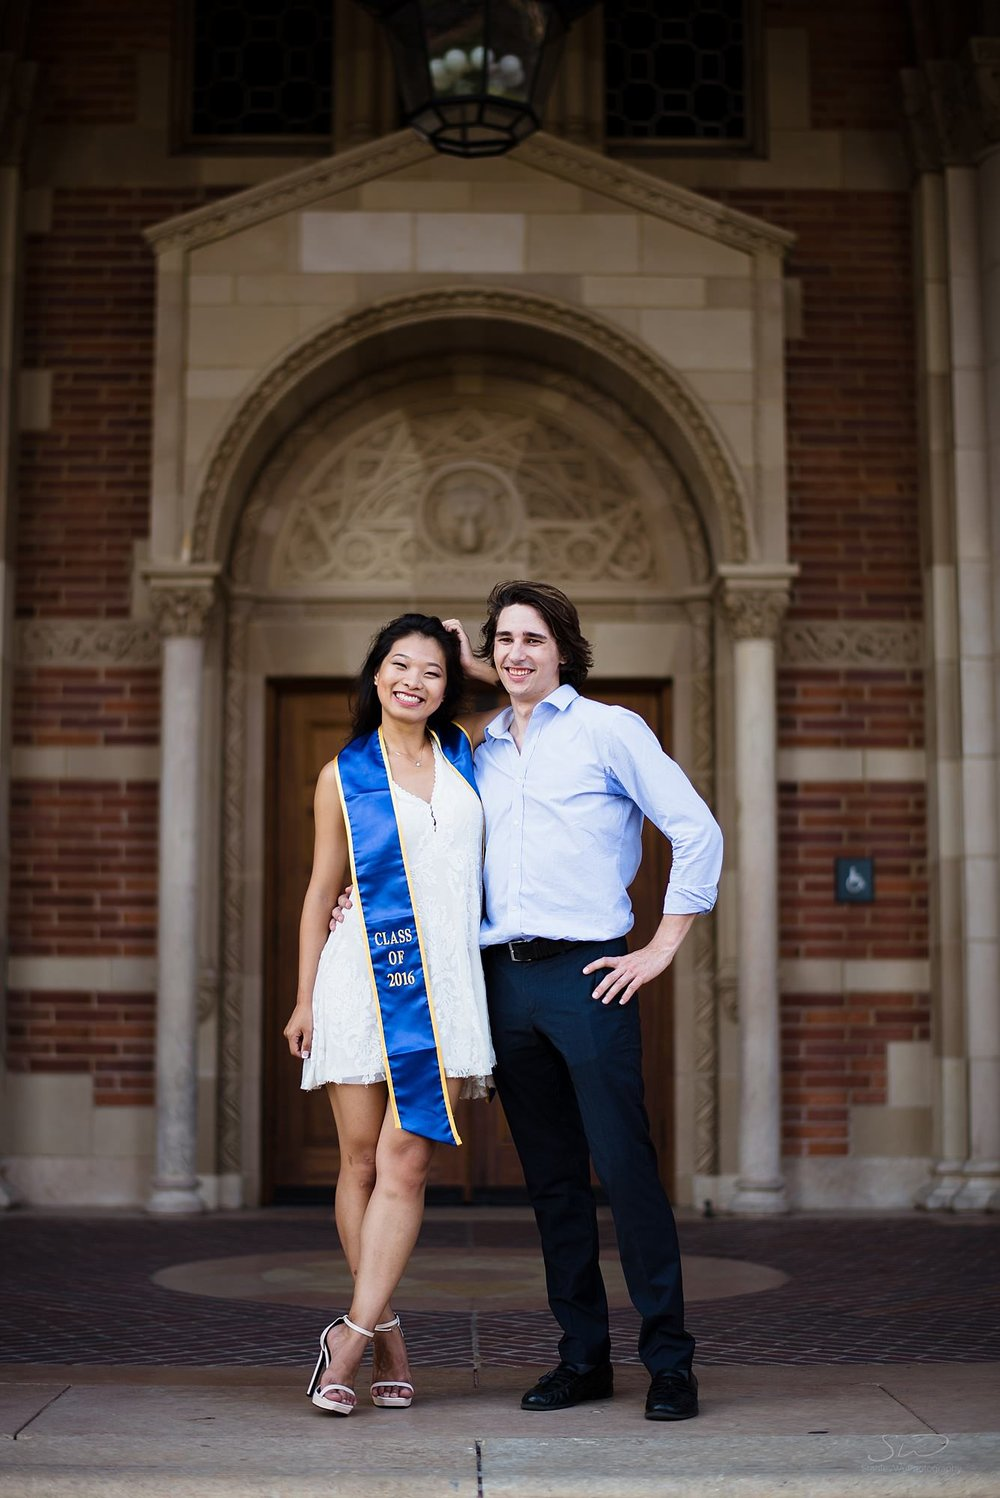 cute graduation senior portrait of beautiful couple posing together in front of royce hall at ucla in los angeles